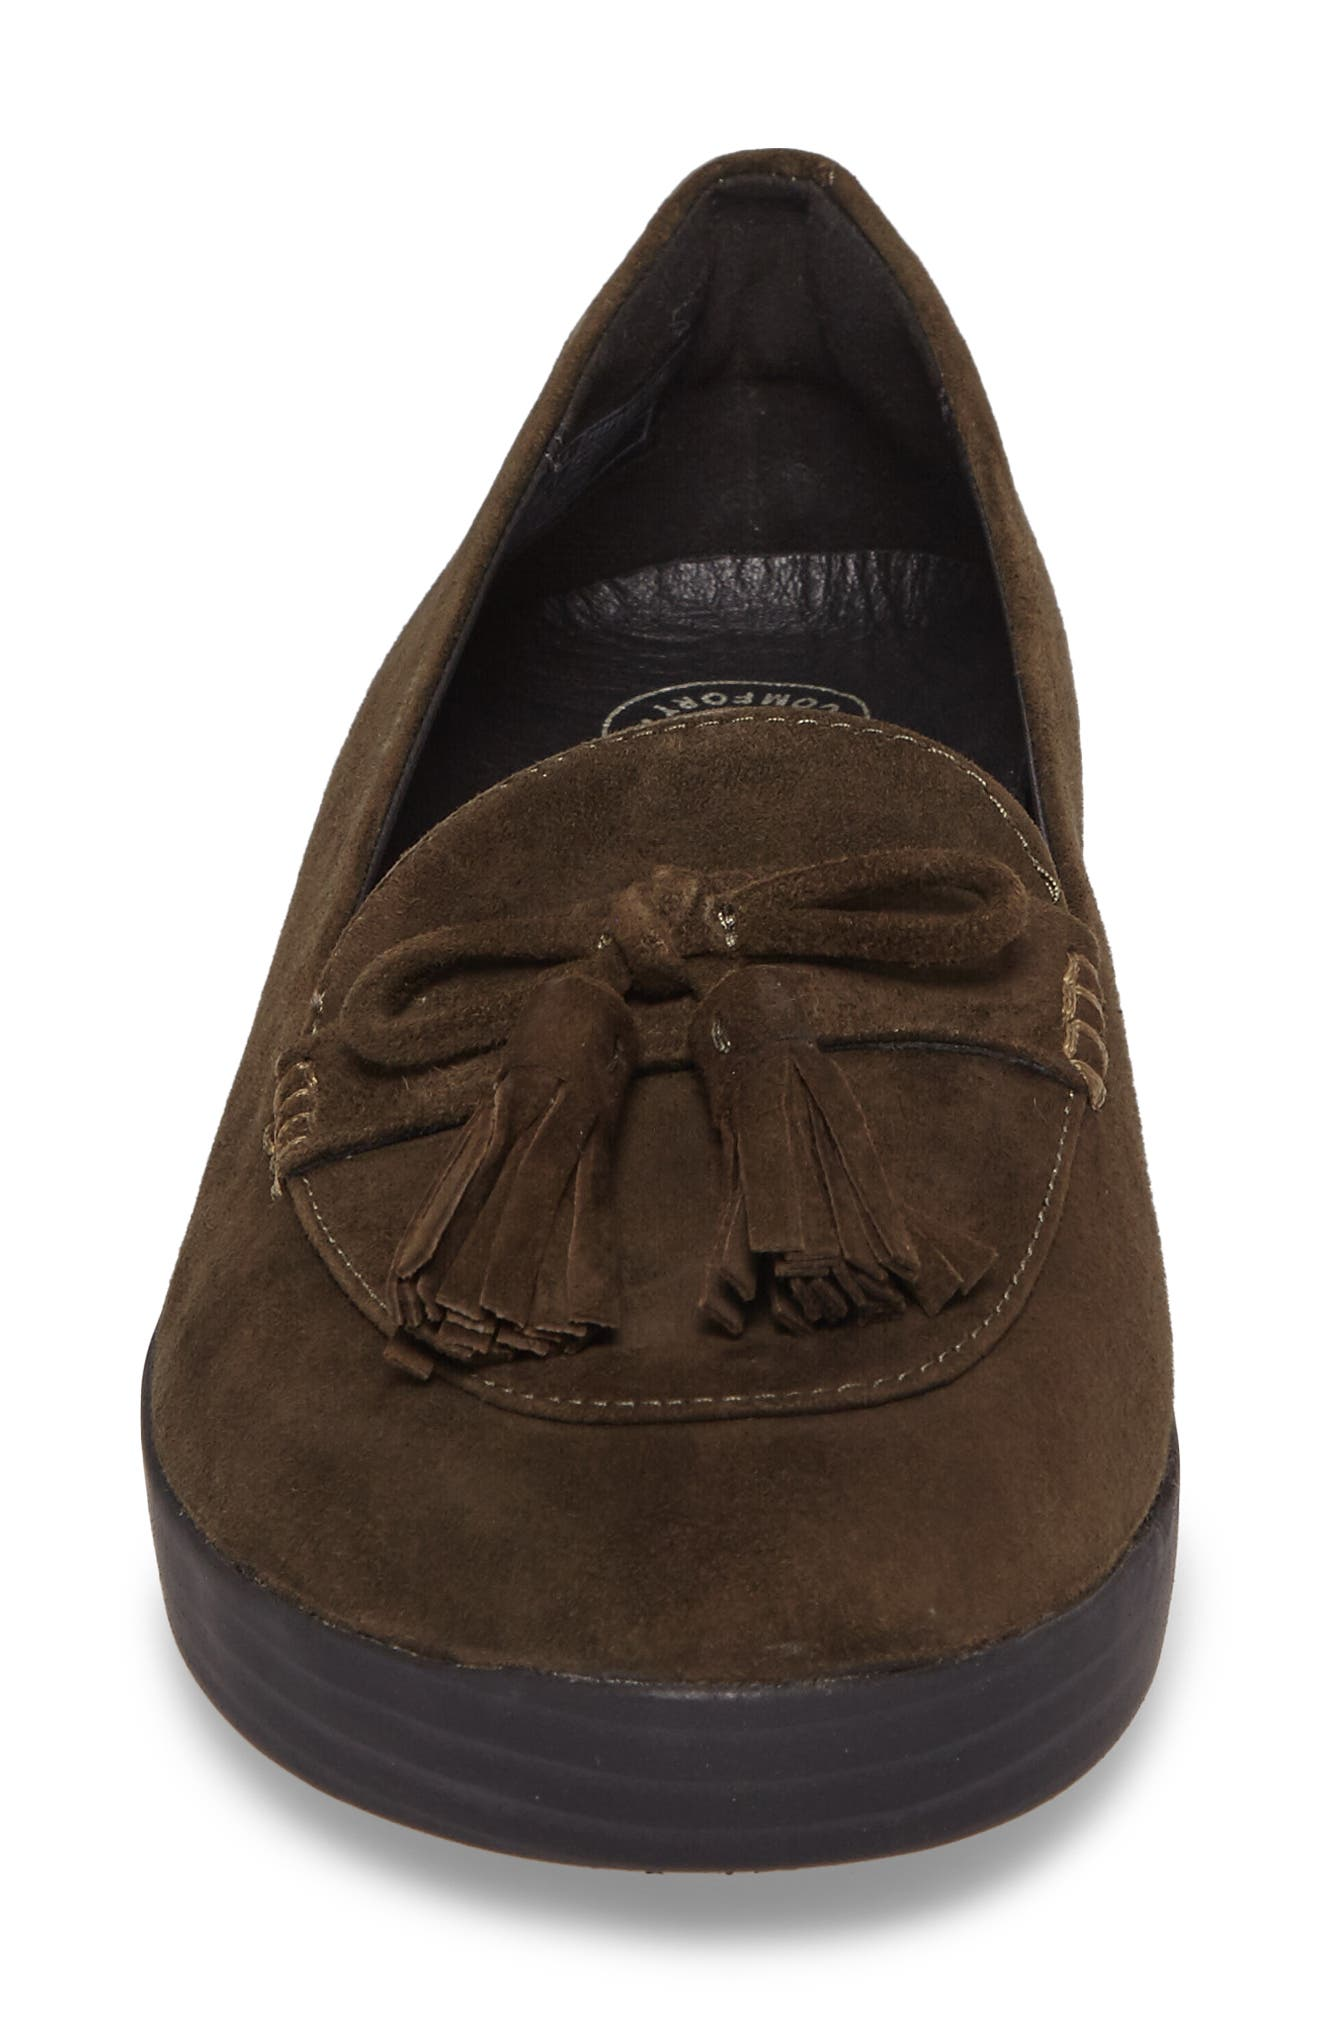 Alternate Image 4  - FitFlop Tassel Bow Sneakerloafer™ Water Repellent Flat (Women)